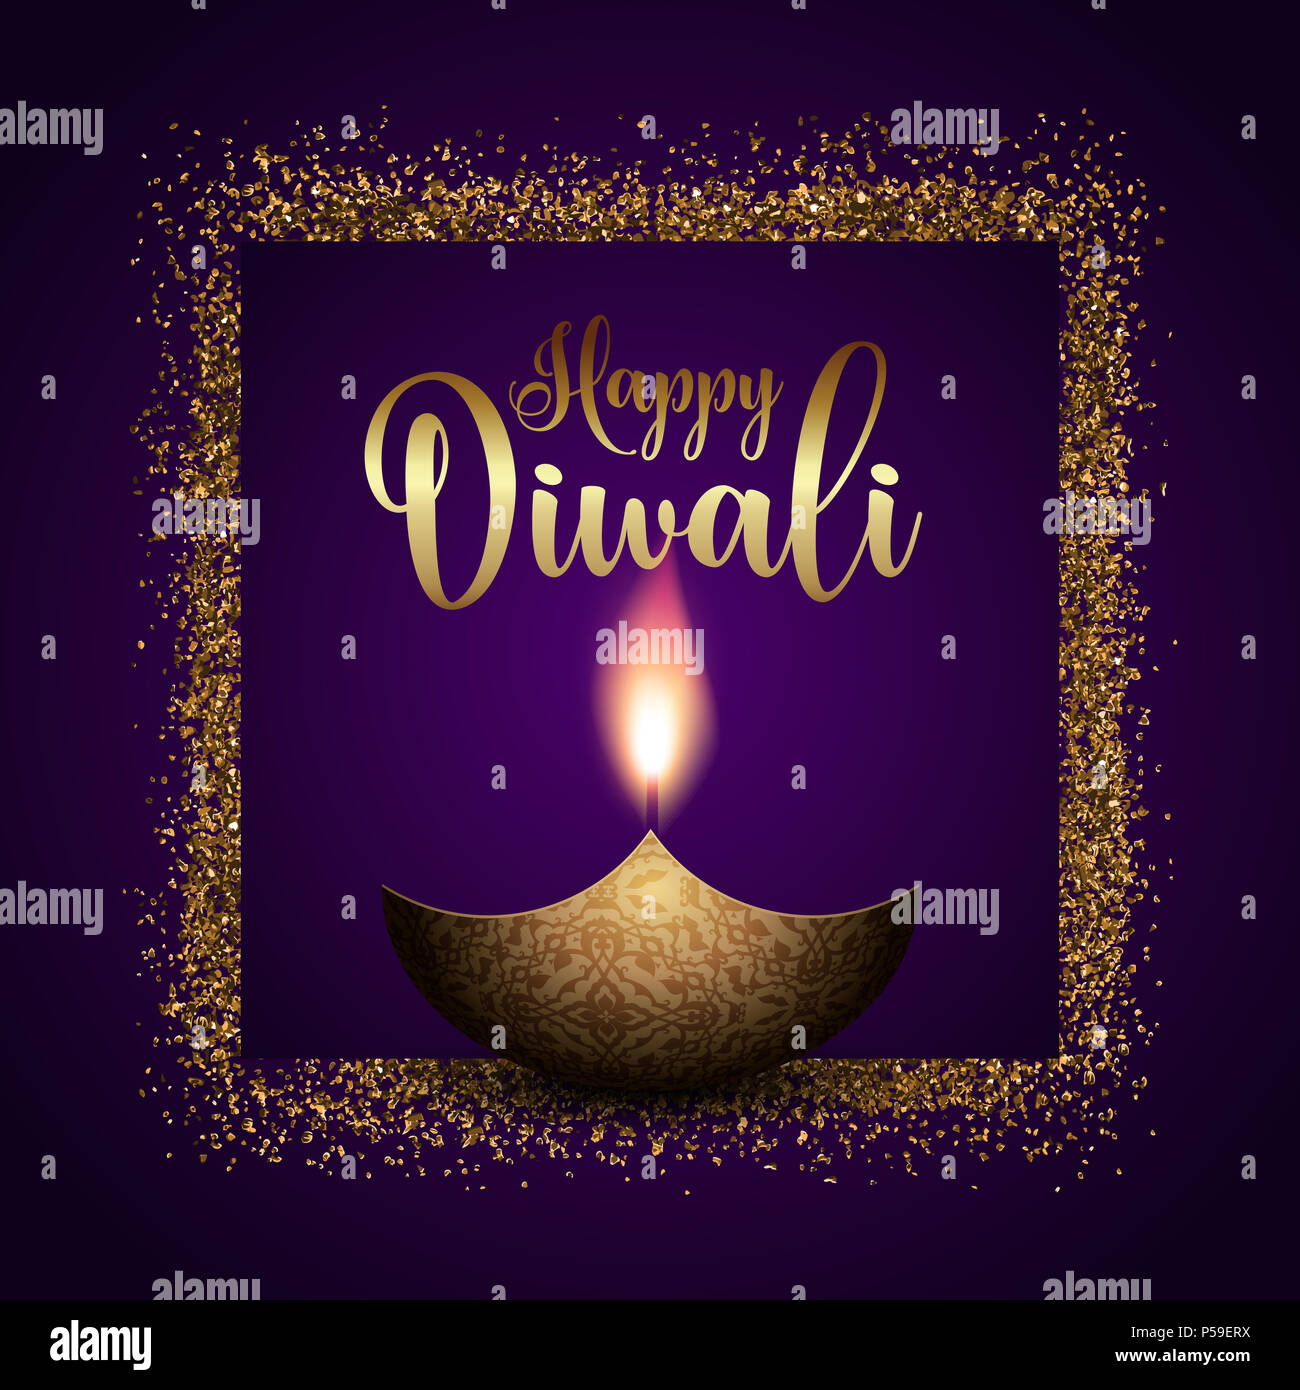 Happy Diwali Background With Gold Glitter Frame Stock Photo Alamy